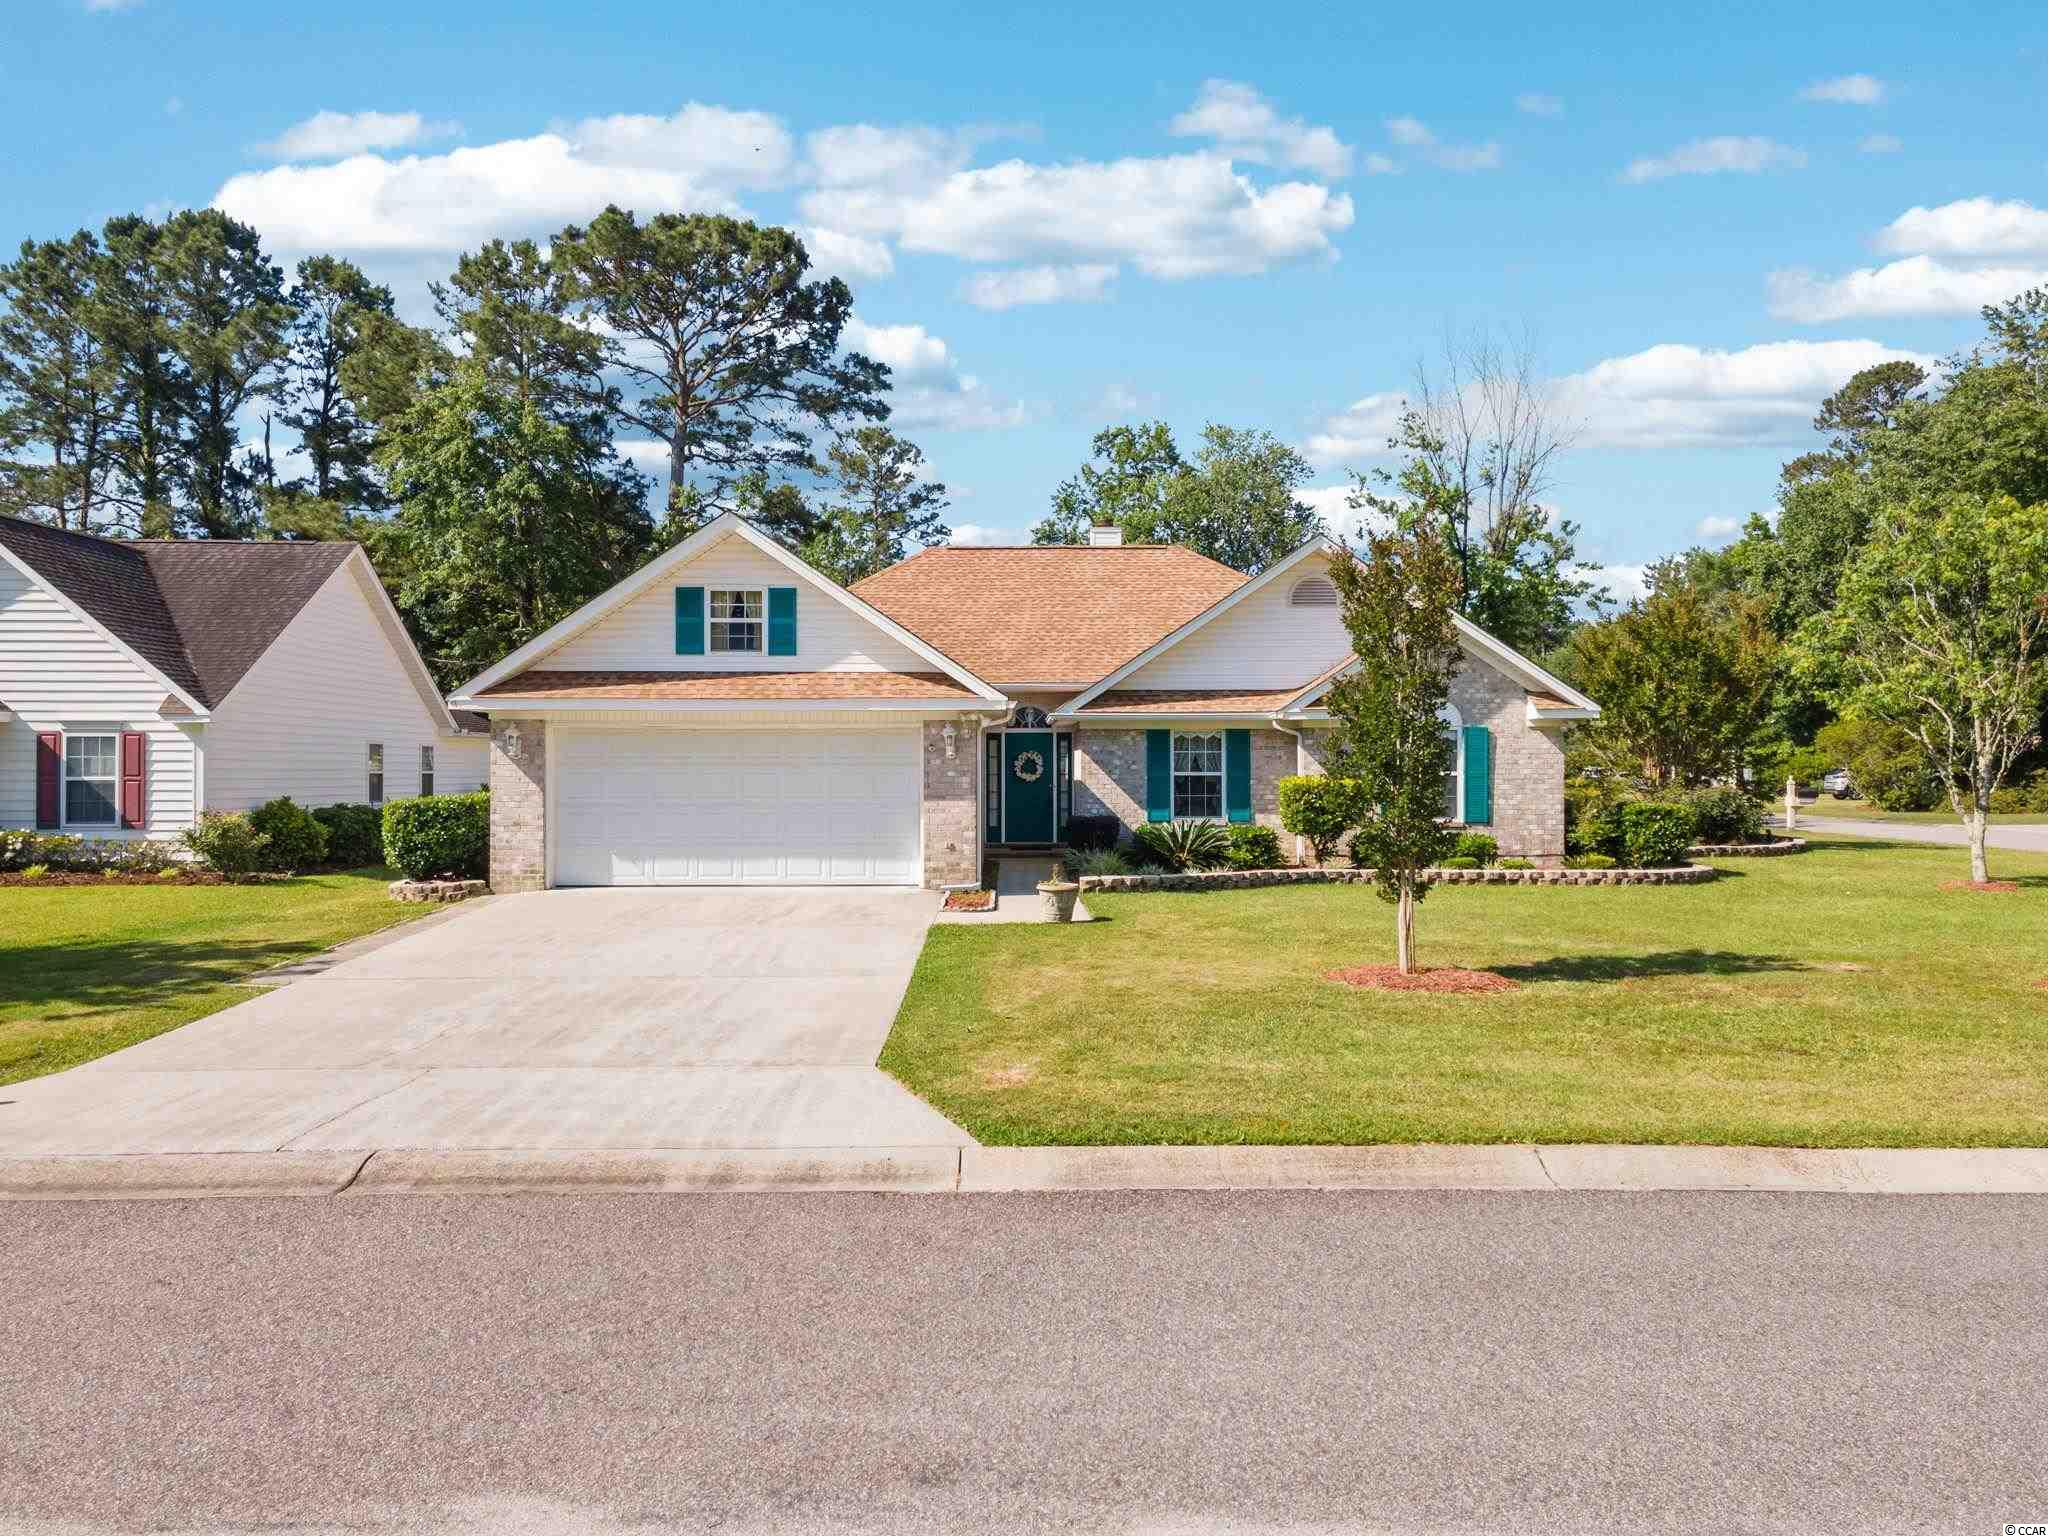 Welcome Home!  Charming home on a beautiful corner lot in Indigo Creek in Murrells Inlet!  This home not only has a family room but a den/tv room and an enclosed sunroom that has heat and air conditioning that was added in 2002.